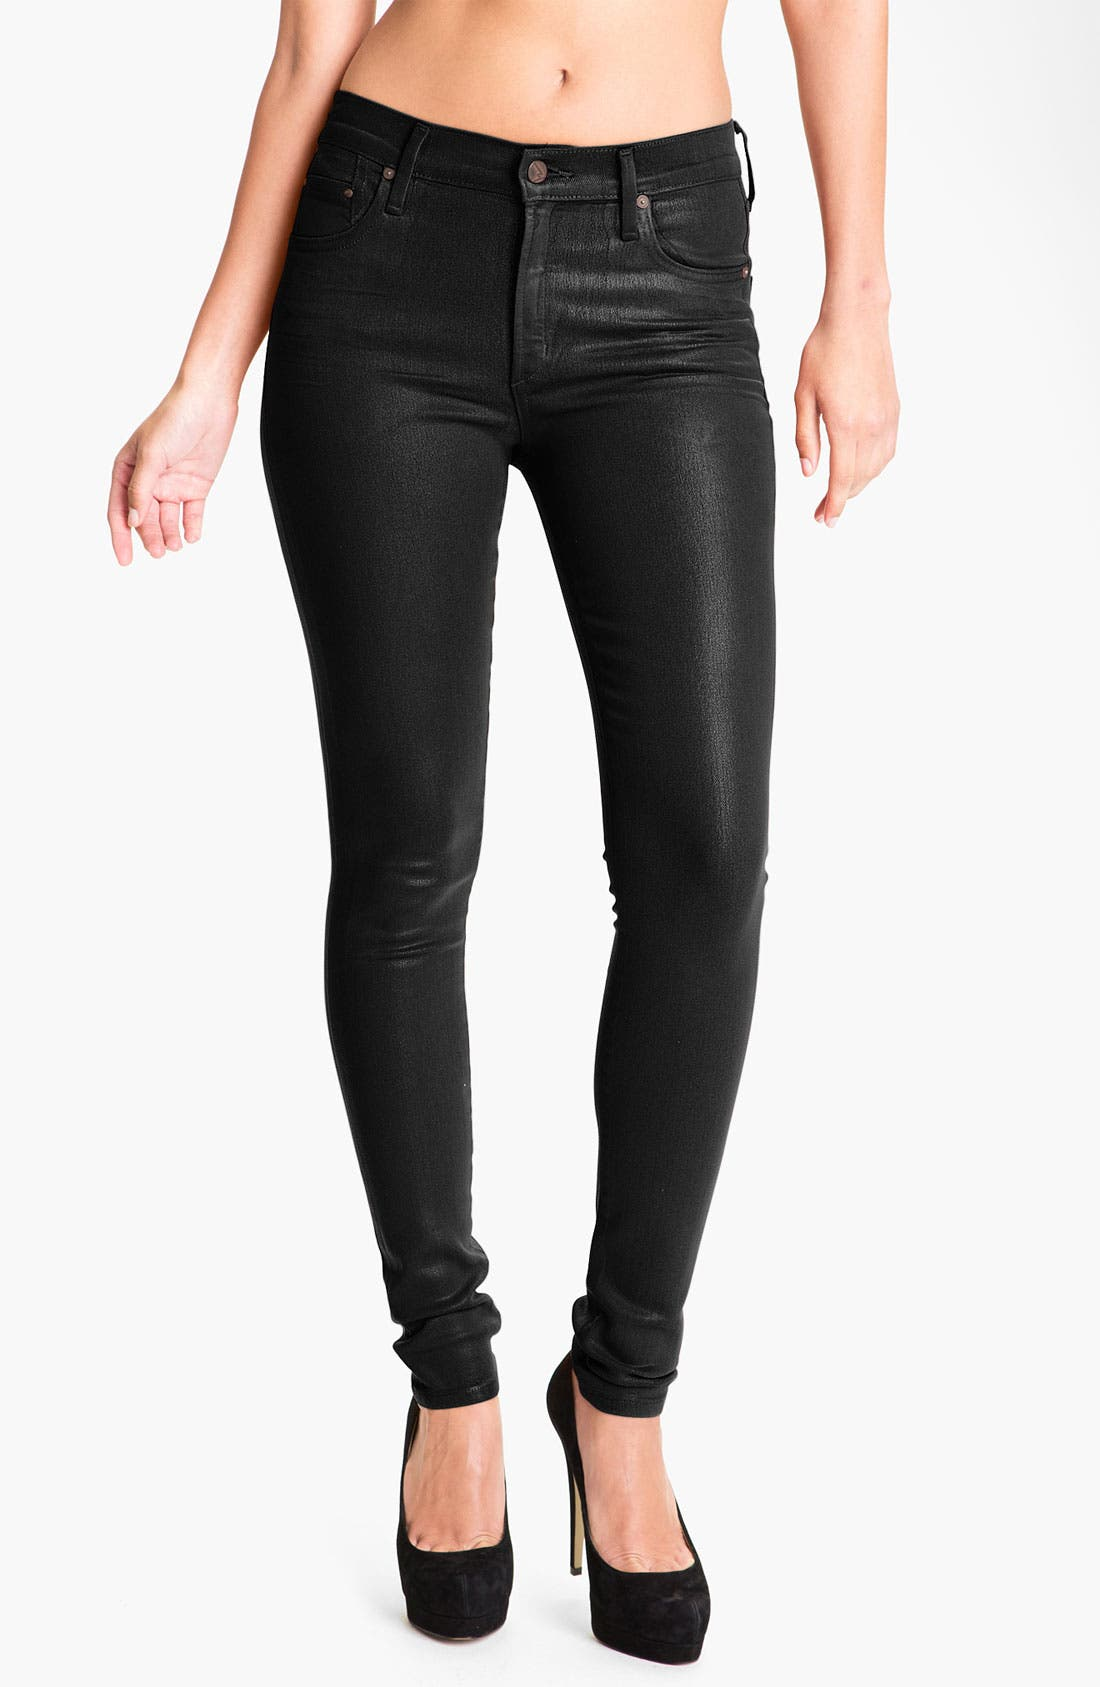 Alternate Image 1 Selected - Citizens of Humanity 'Rocket' Skinny Leatherette Jeans (Black)